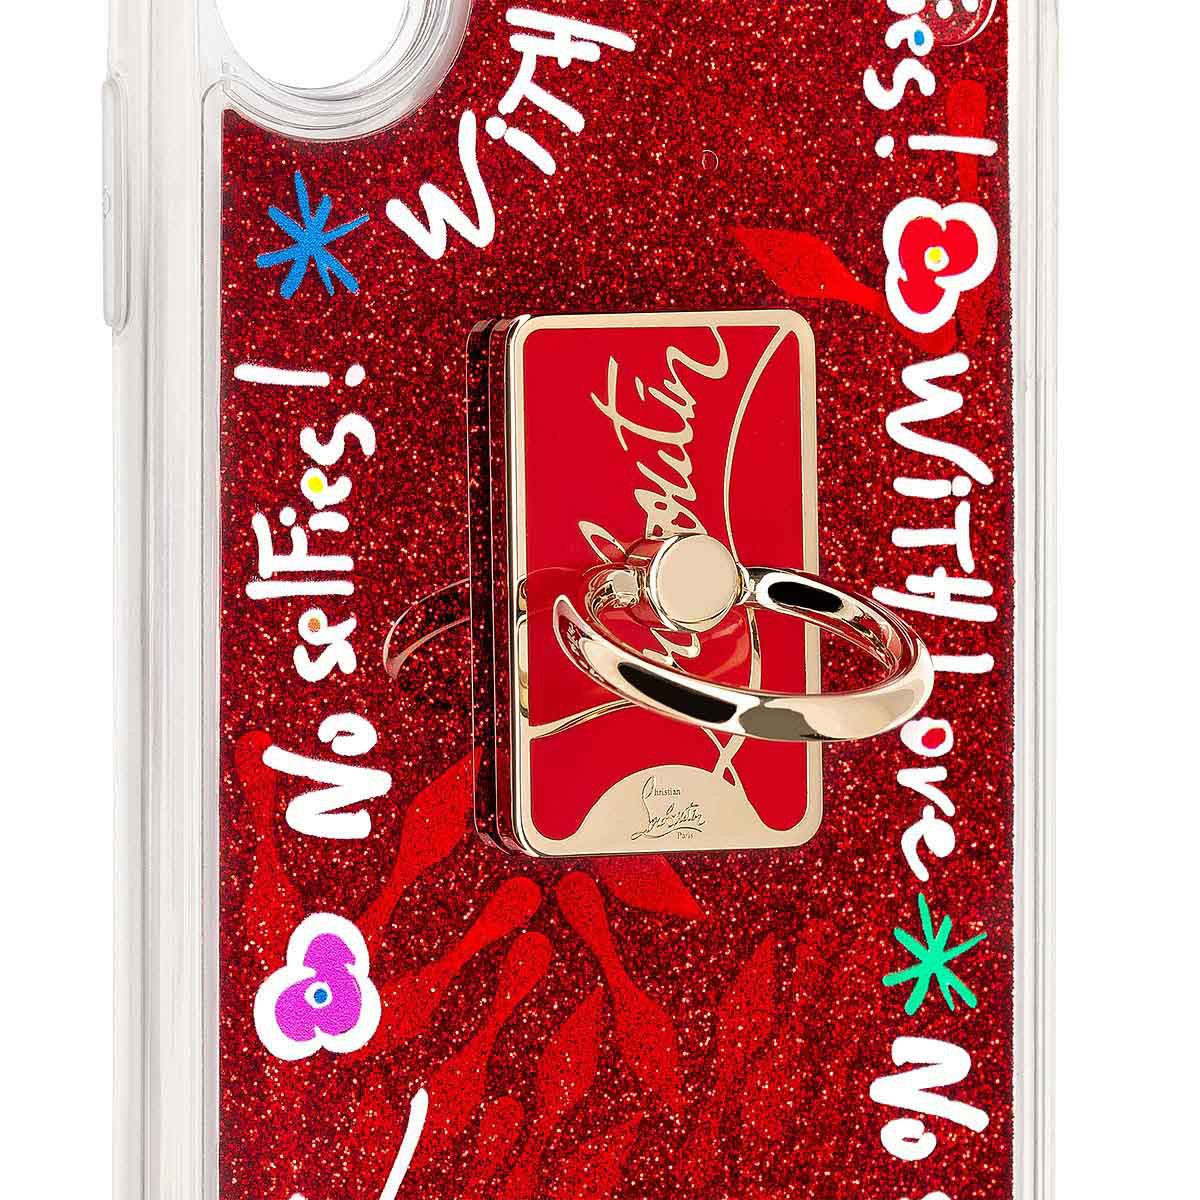 Small Leather Goods - Loubiring Case Iphone X/xs - Christian Louboutin